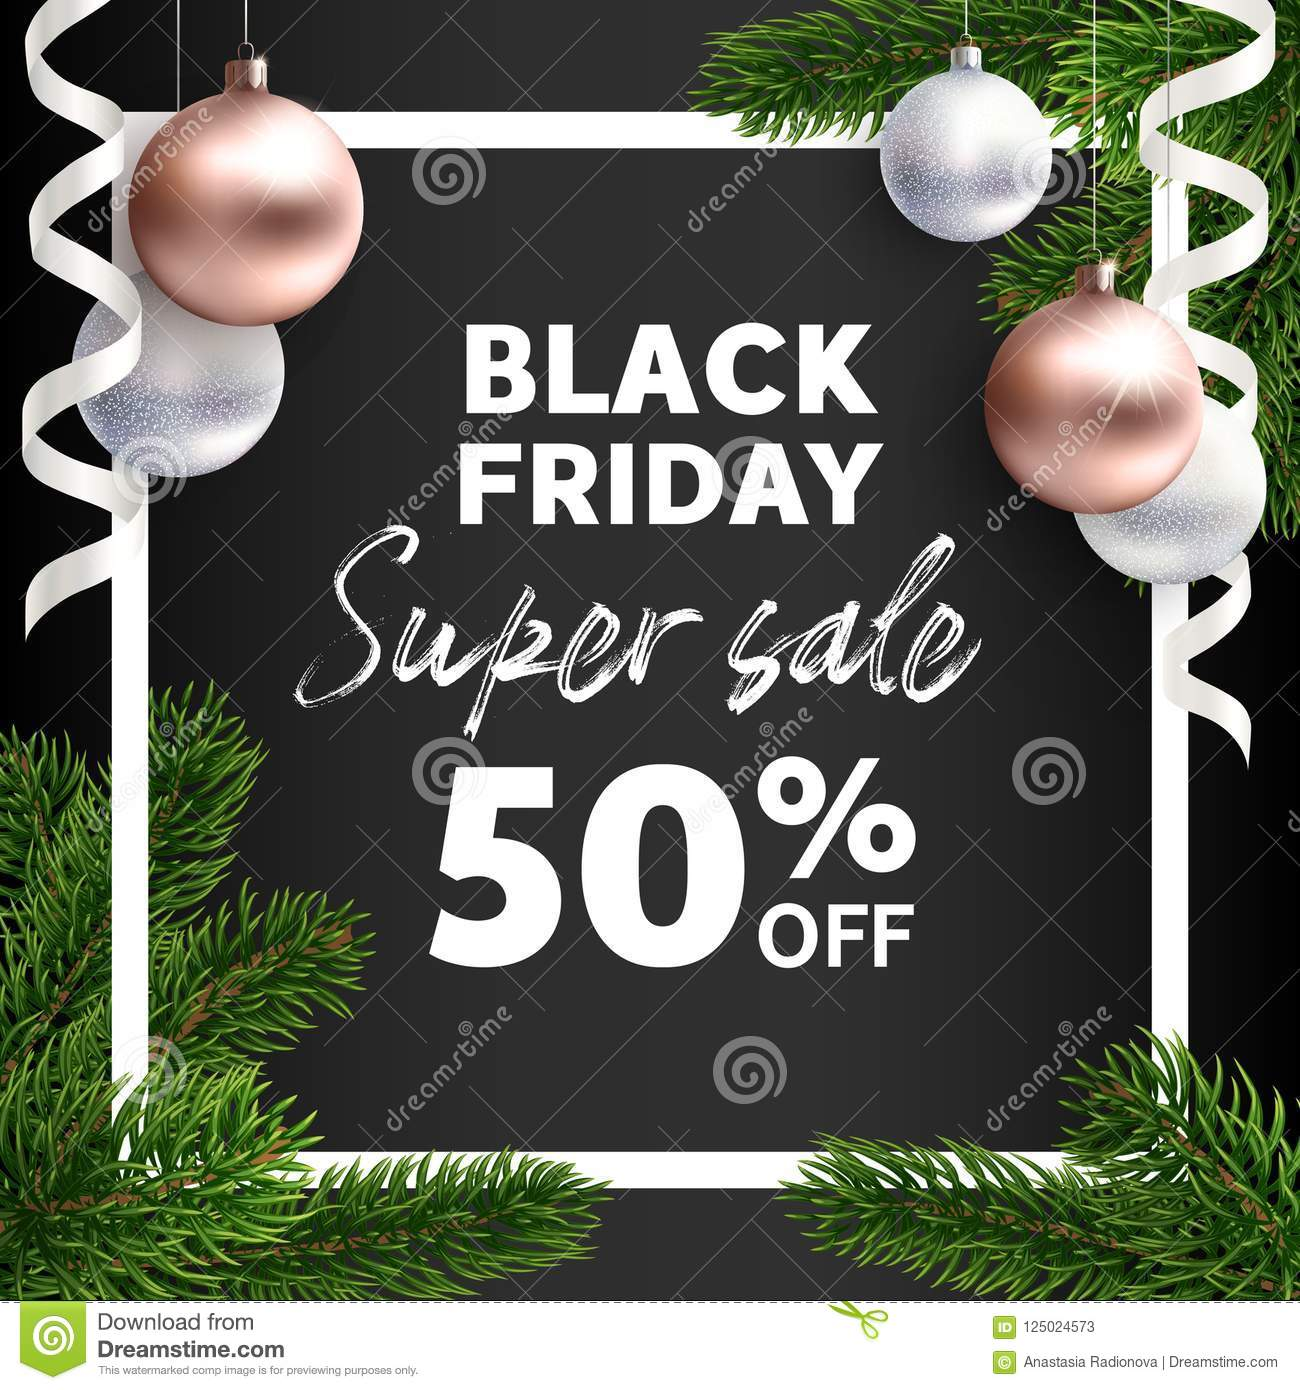 banner black friday sale vector flyer template stock vector jpg 1300x1390 christmas tree sale flyer template - Black Friday Christmas Tree Sale